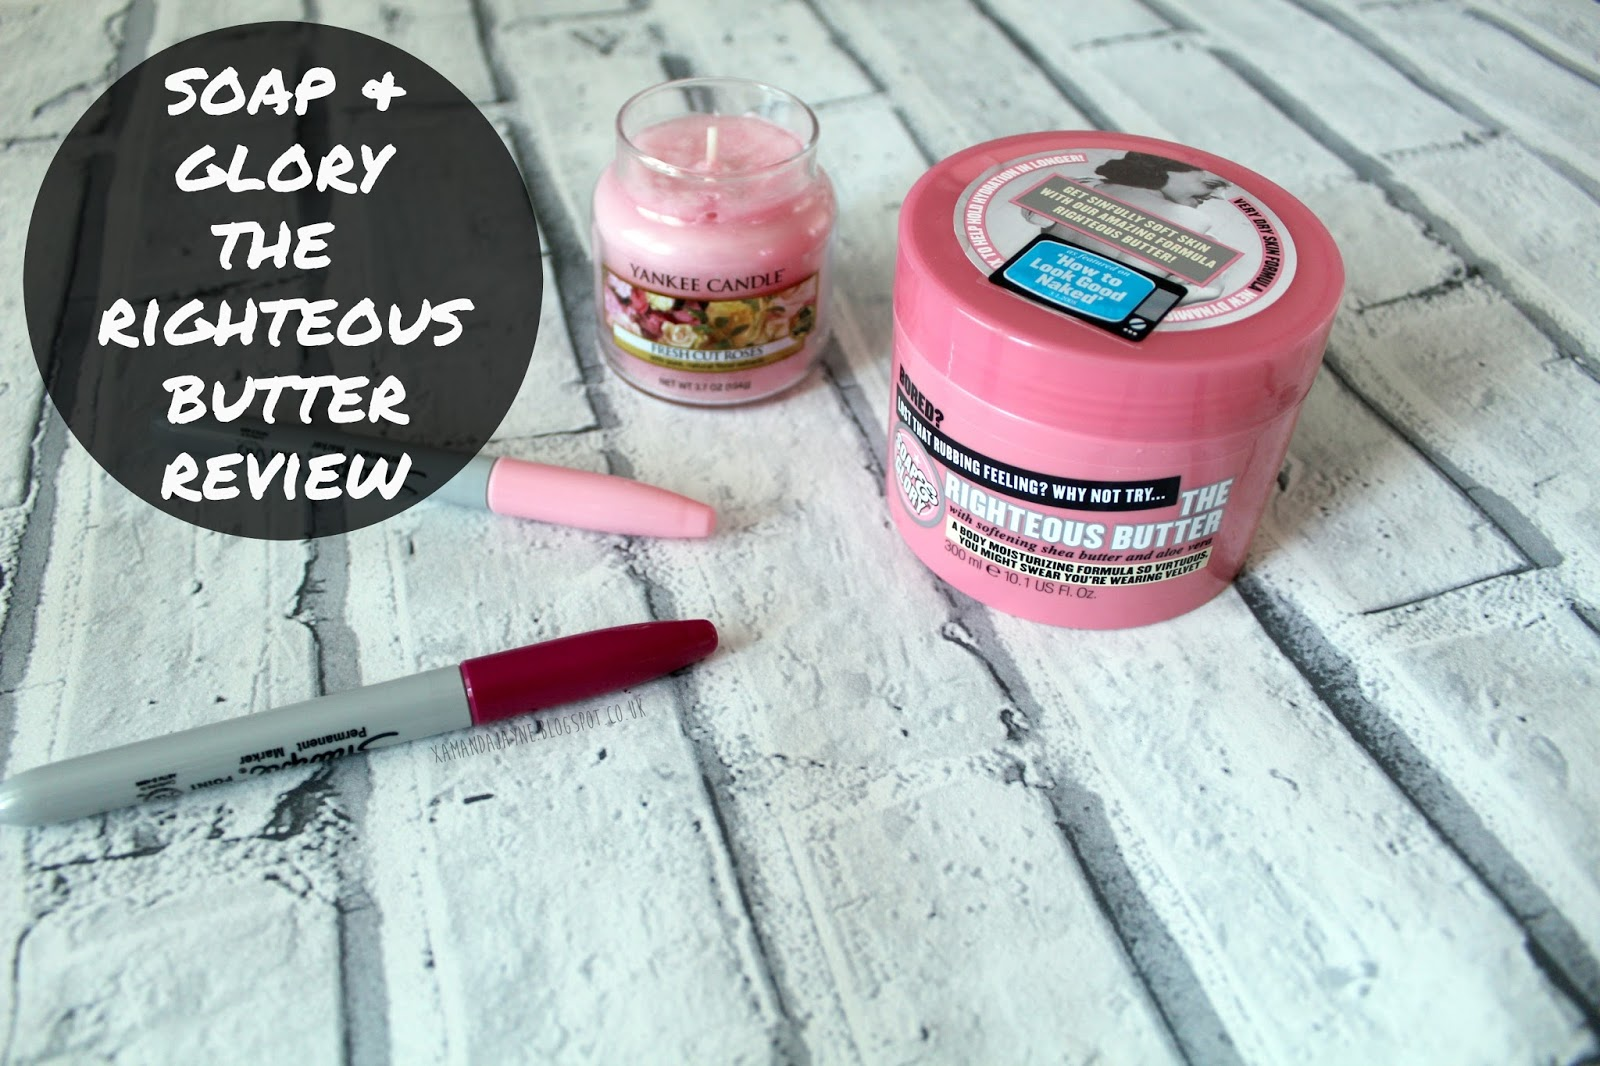 soap and glory the righteous butter review